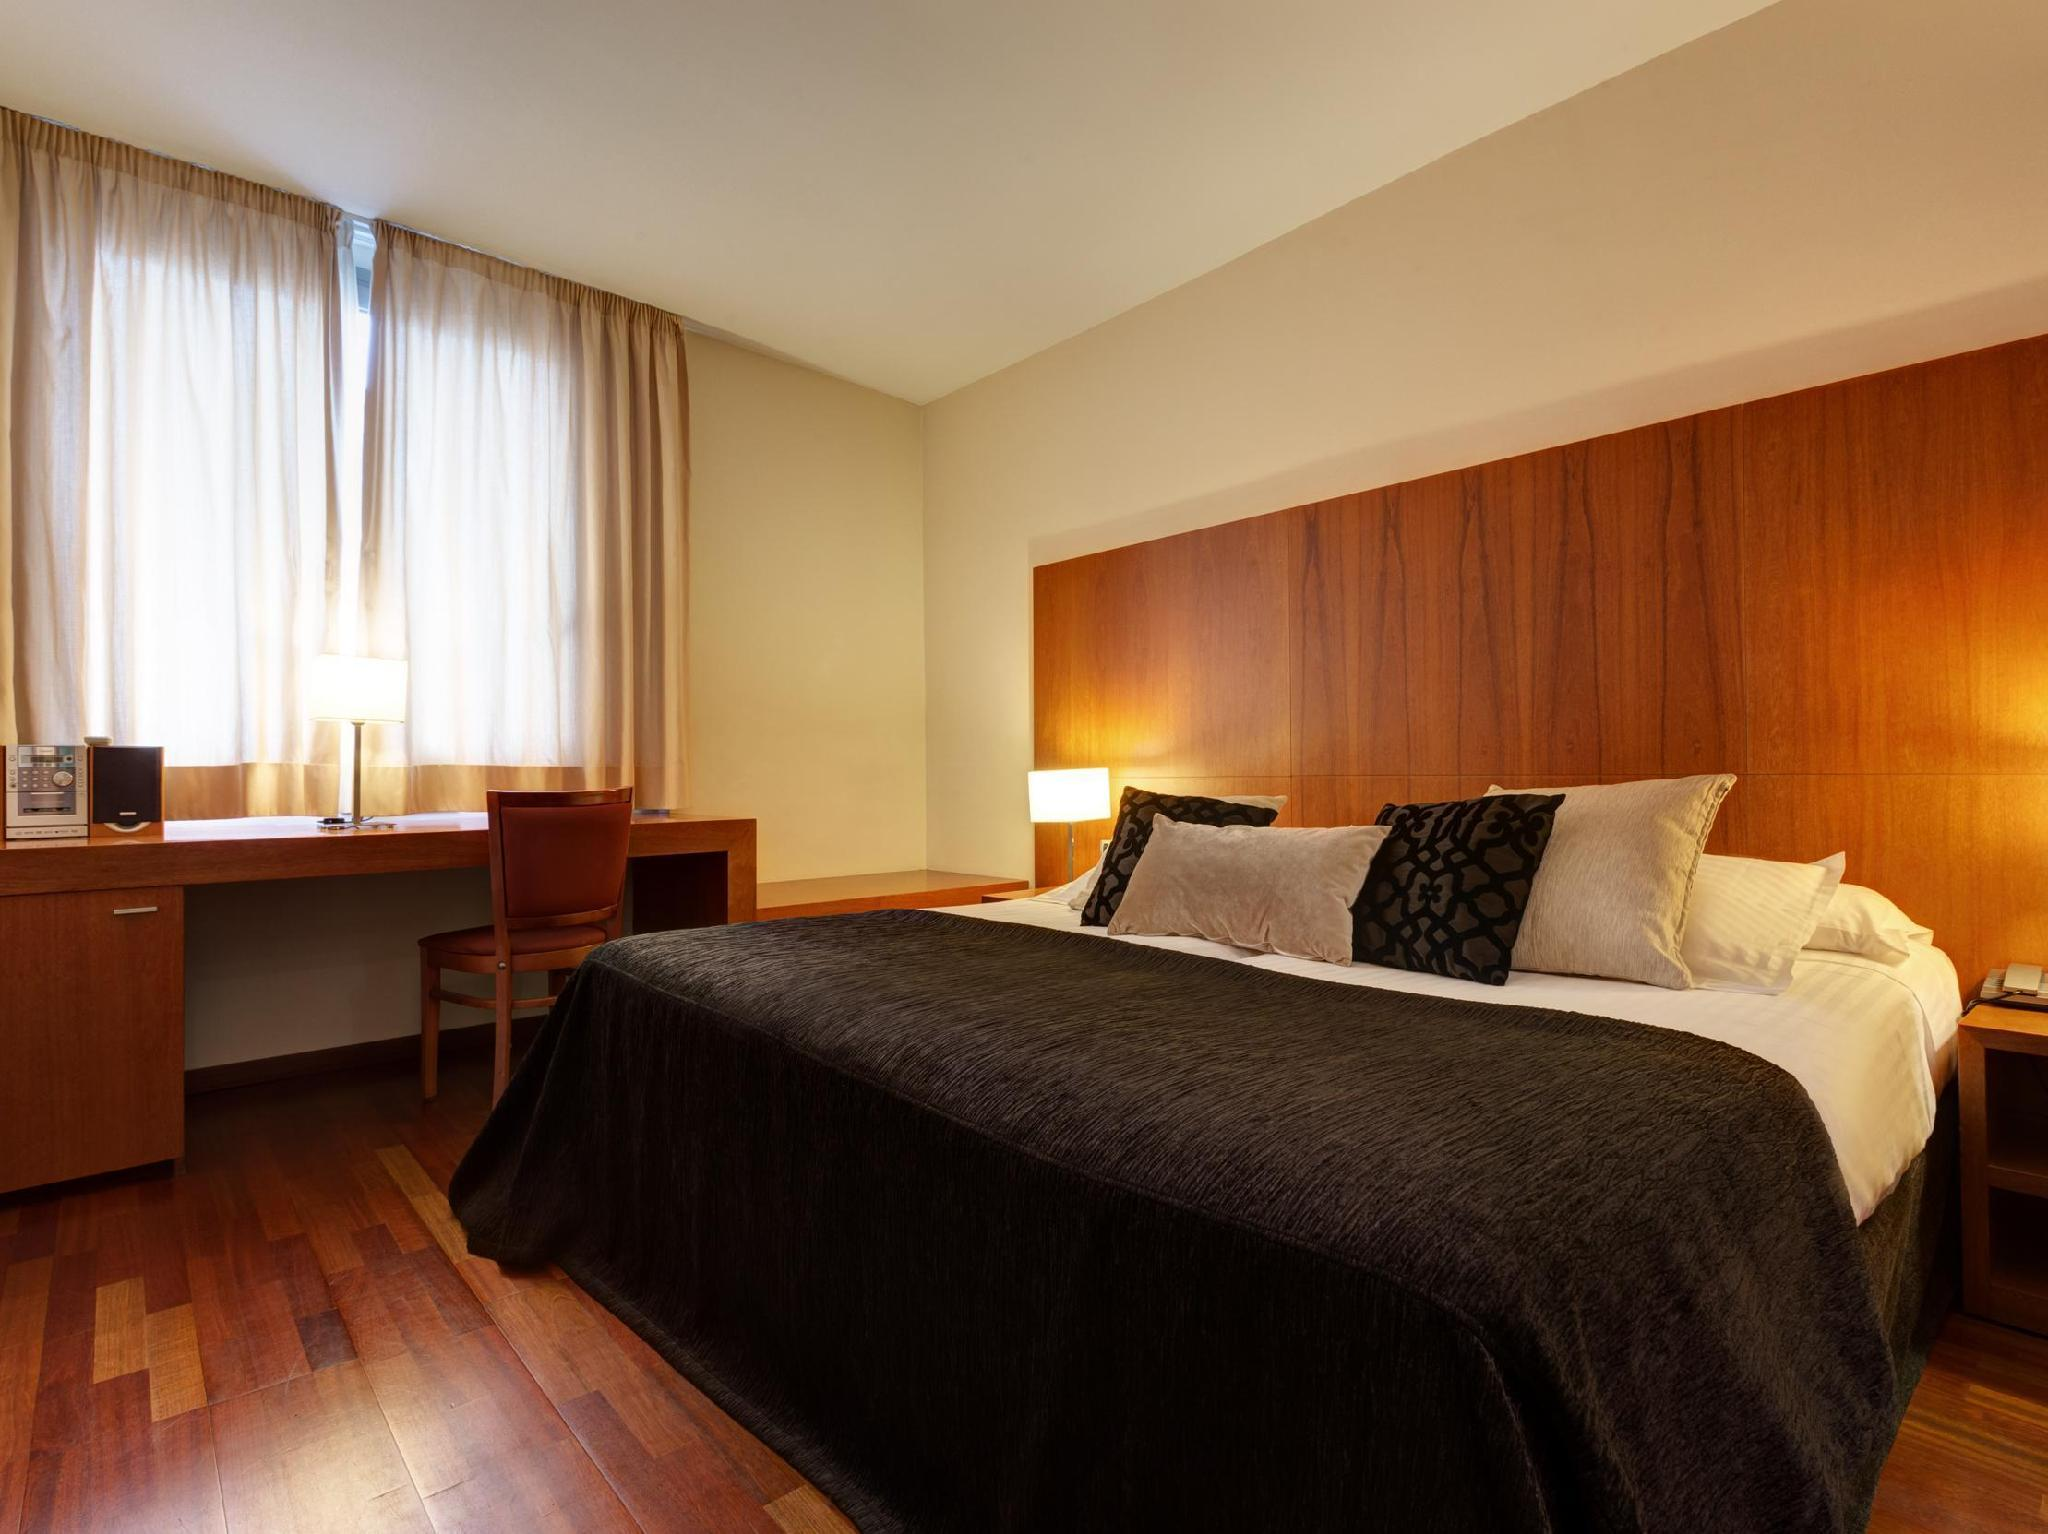 Superior Deluxe Double Room (1 Adult)